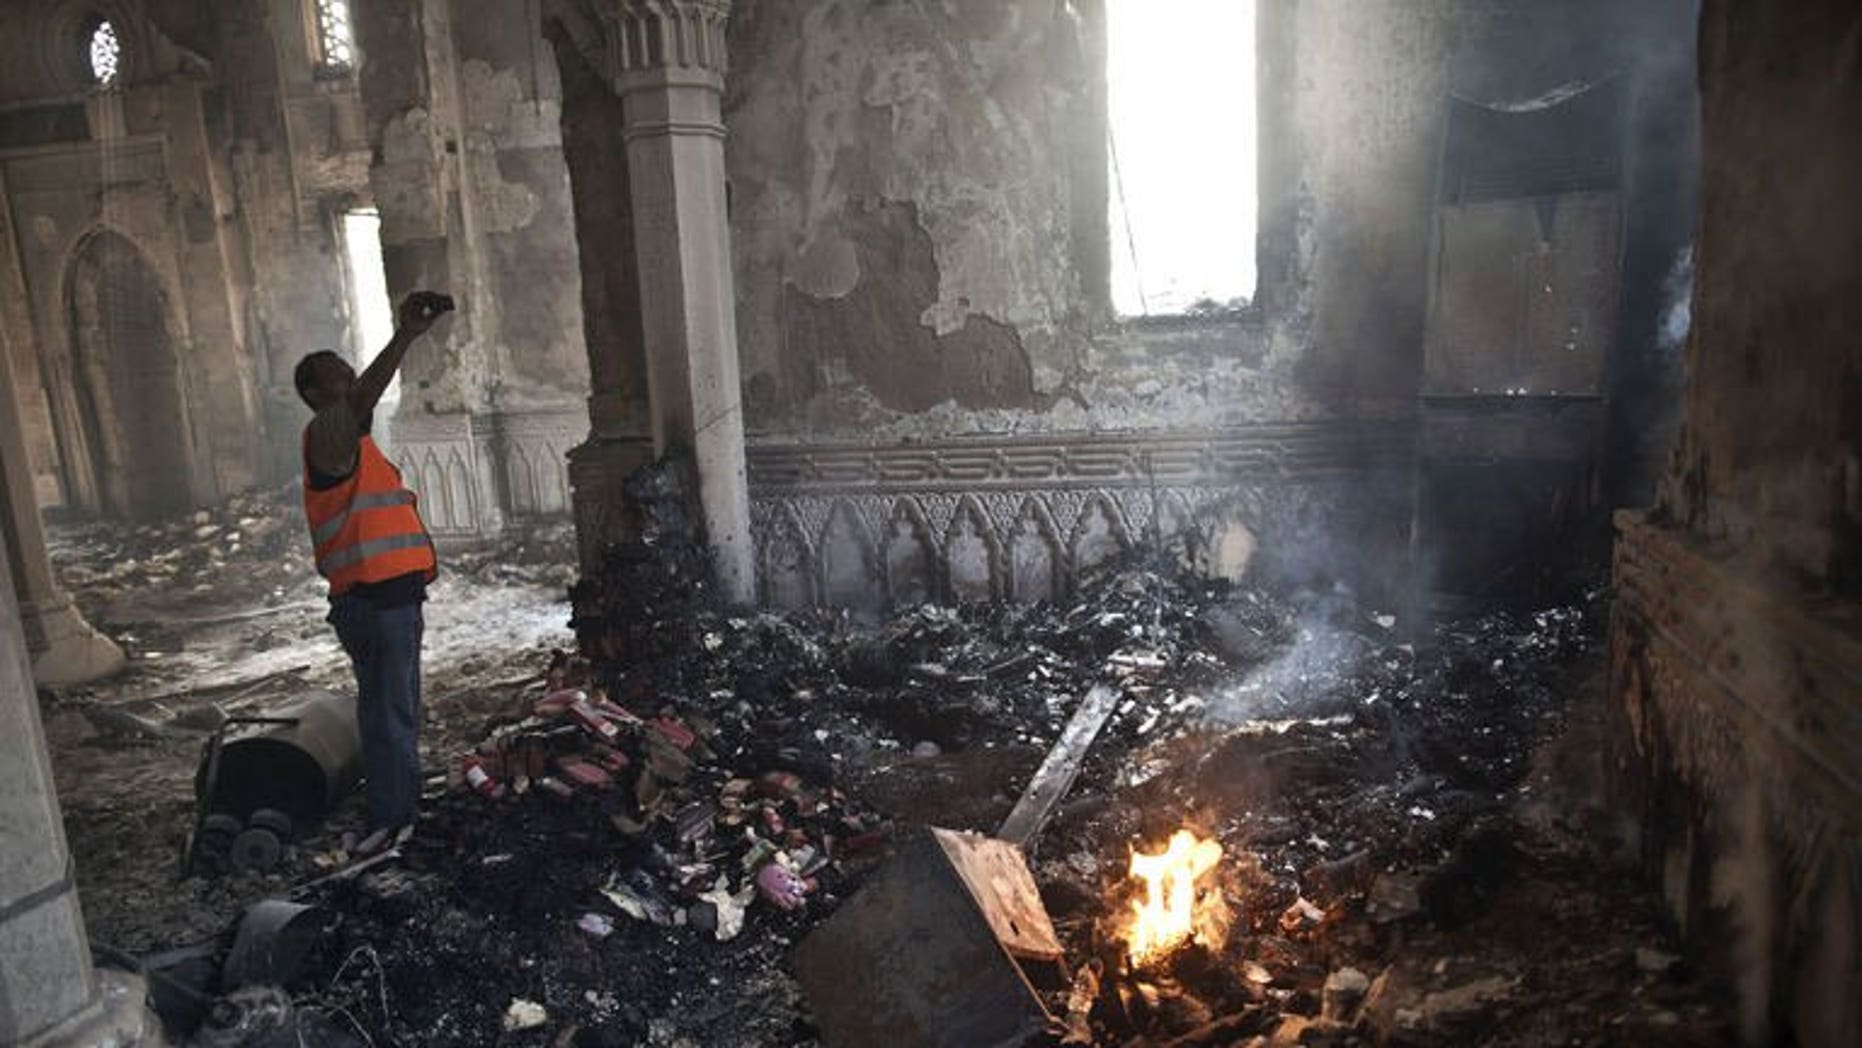 """An Egyptian stands near a burning fire as he takes a picture of the damage at Rabaa al-Adawiya mosque in Cairo, on August 15, 2013. French President Francois Hollande says """"everything must be done to avoid a civil war"""" in Egypt, after a crackdown by security forces on supporters of ousted Islamist president Mohamed Morsi left over 460 people dead."""